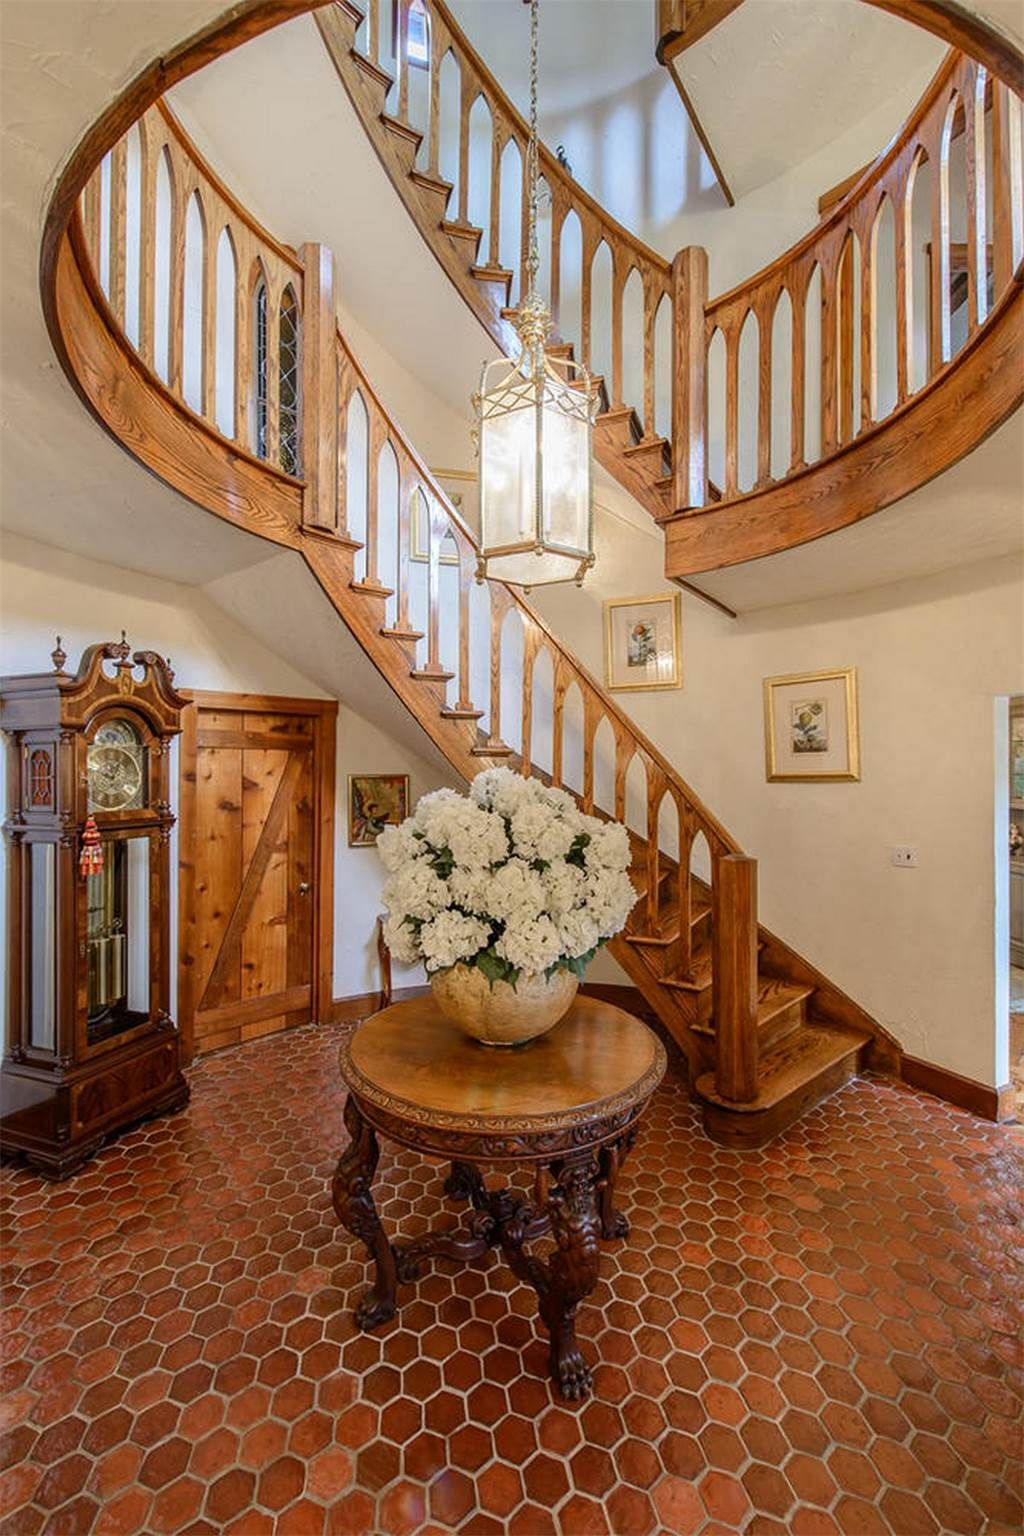 Property Of Sunstar Hill Spiral Curvy Or Straight On Staircases - Curvy-spiral-house-design